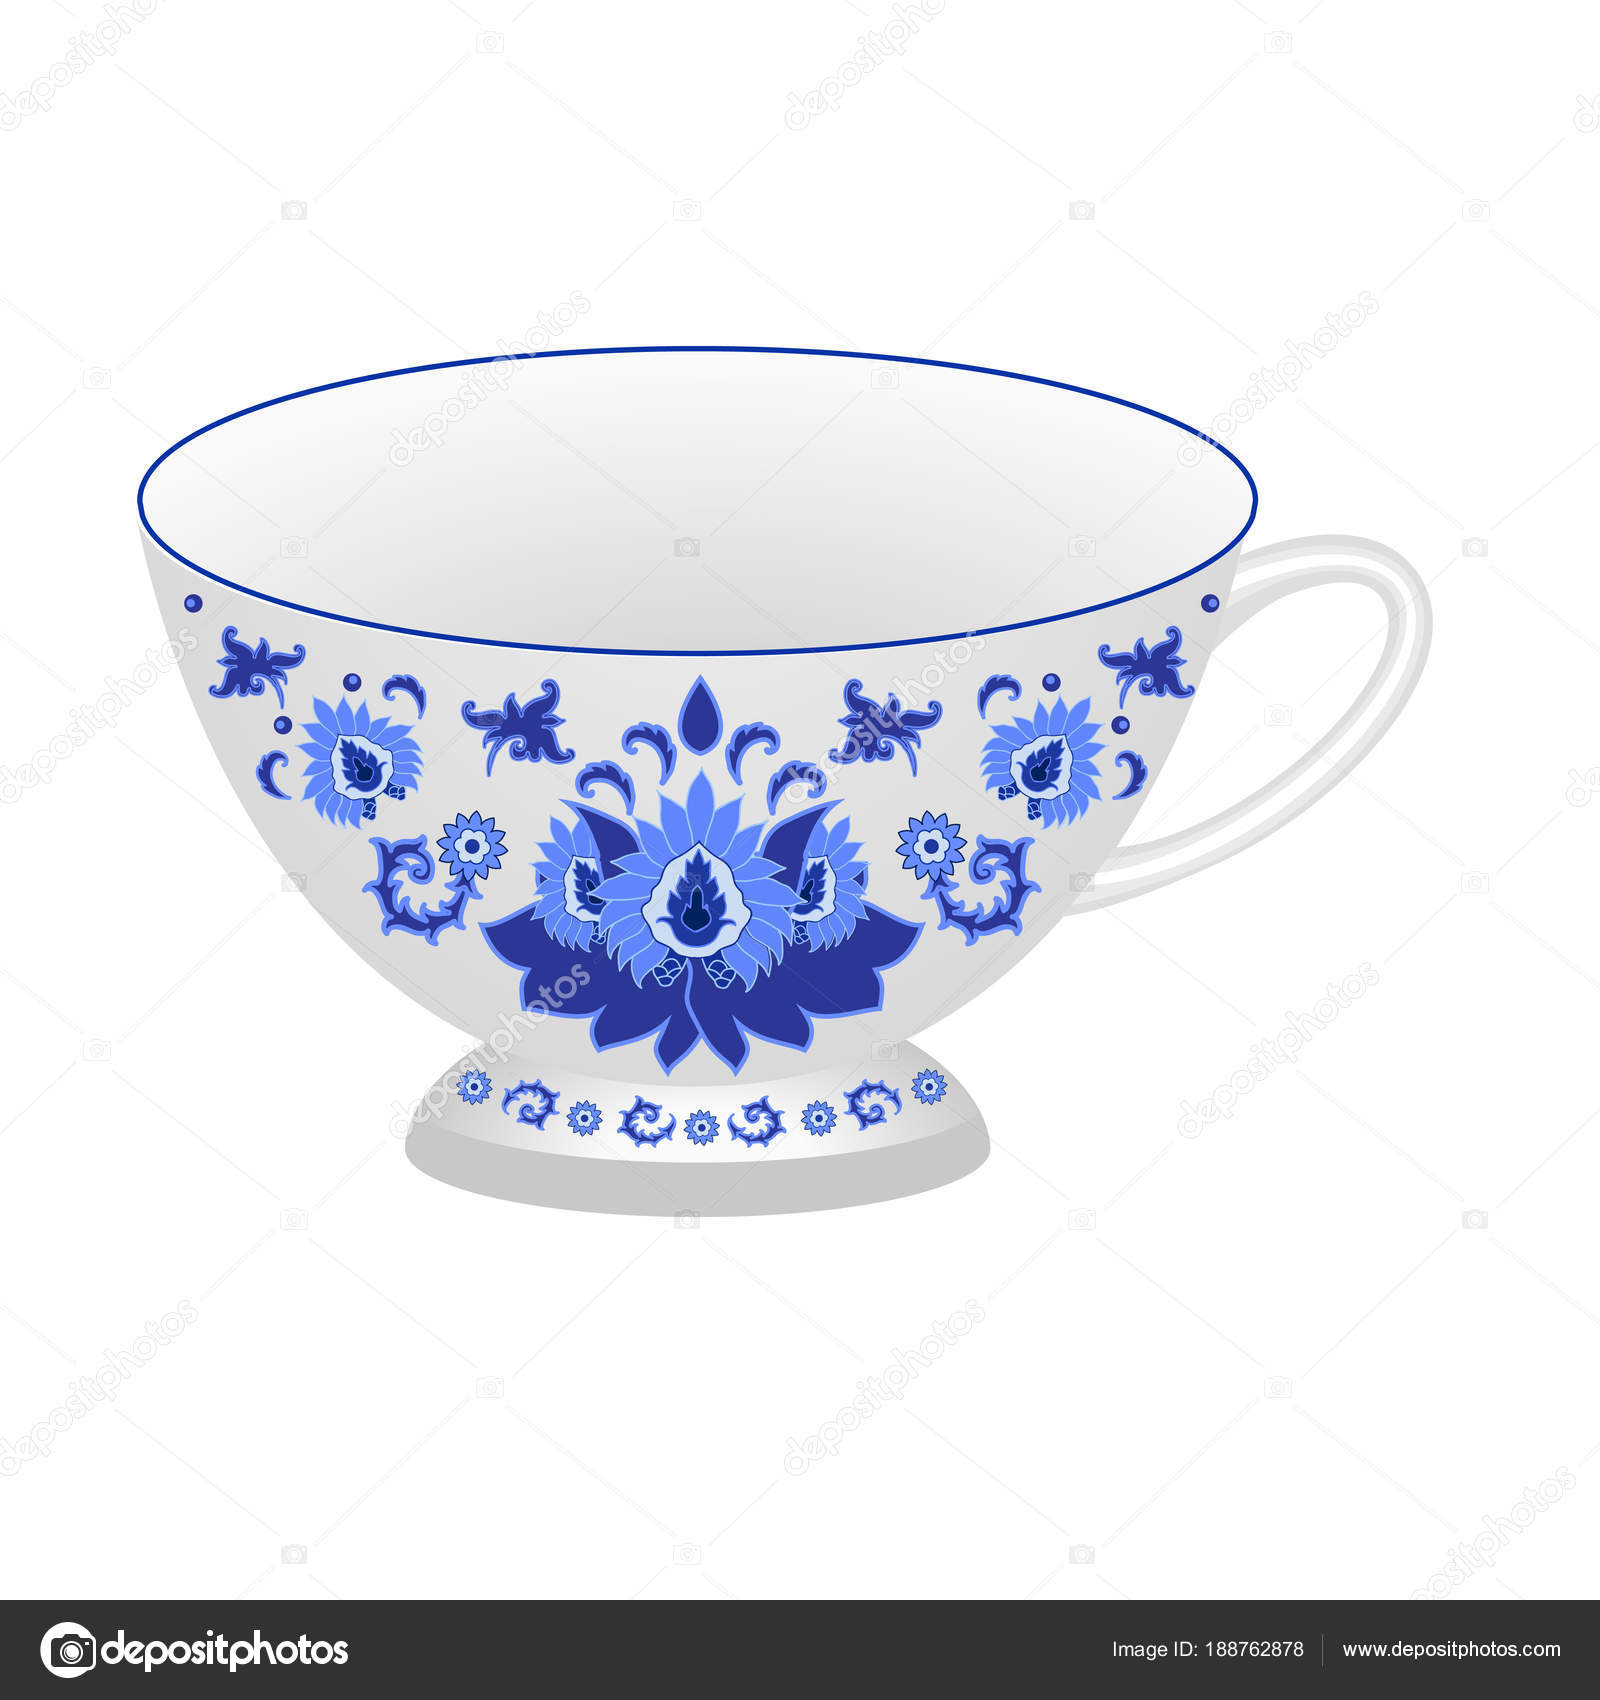 Decorative porcelain tea cup ornate in traditional Russian style Gzhel. Isolated white cup with blue floral ornament pattern.  sc 1 st  Depositphotos & Decorative Porcelain Tea Cup Ornate Traditional Russian Style Gzhel ...